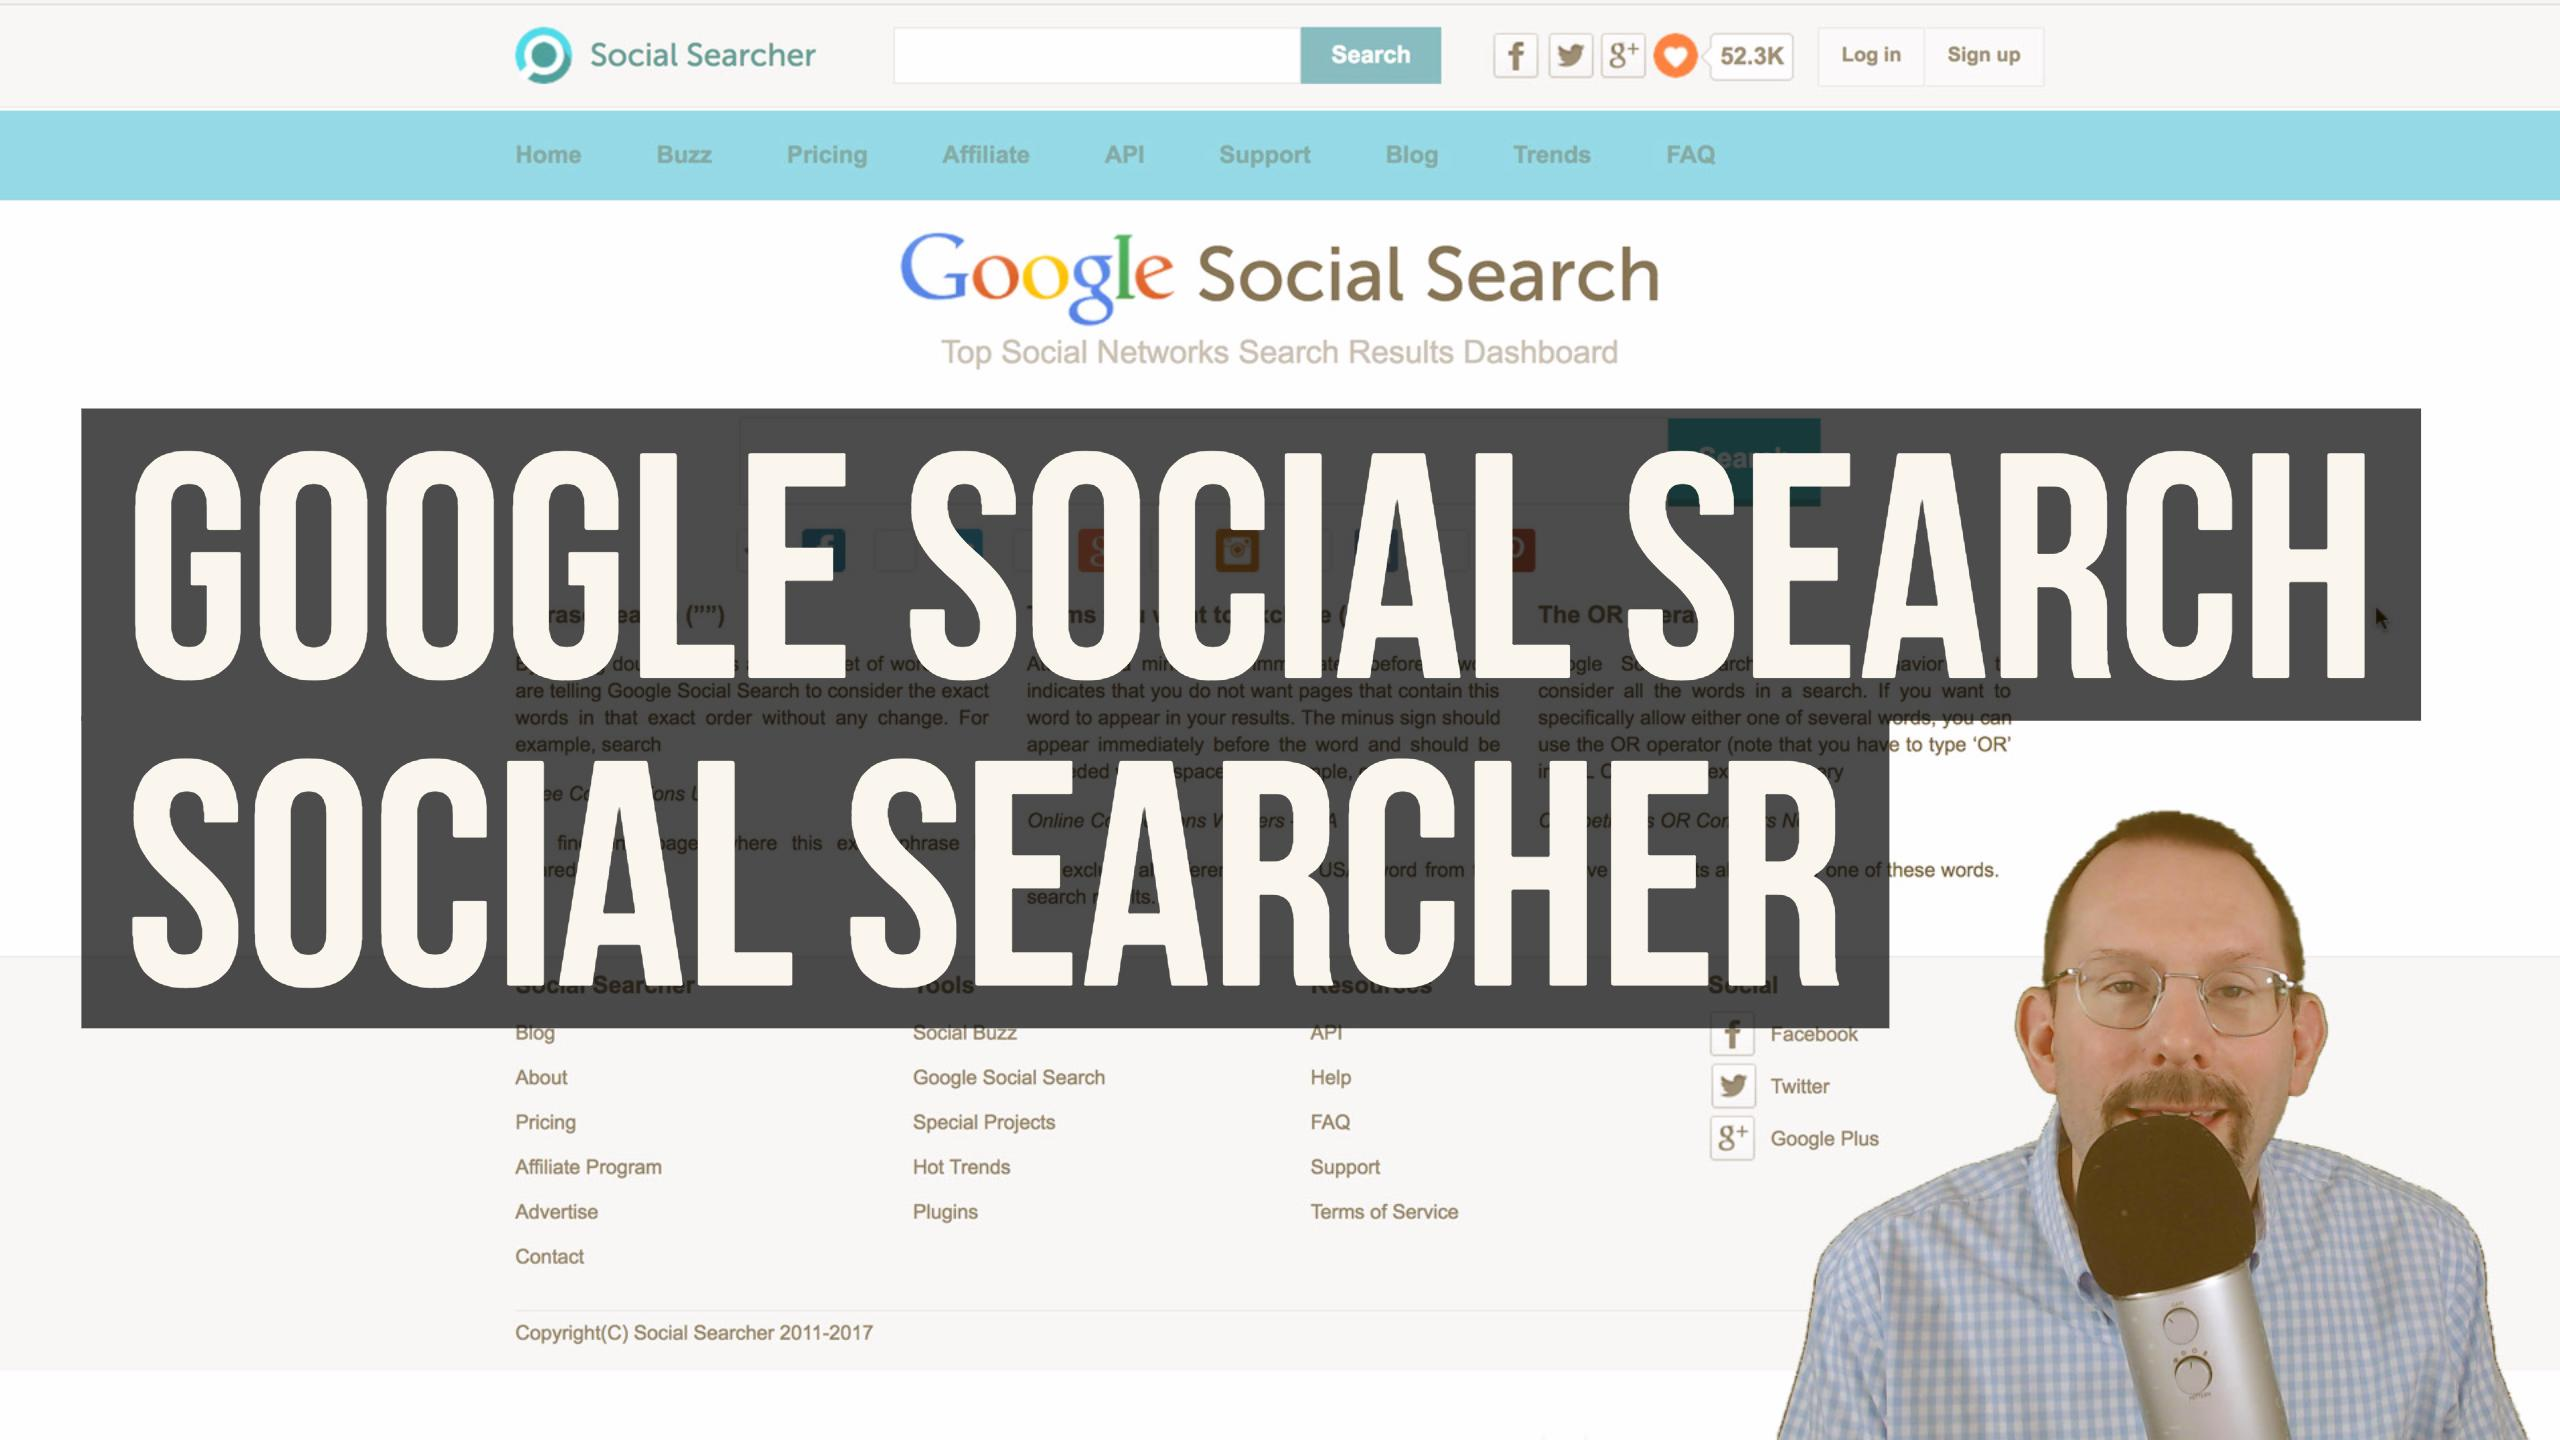 Google Social Search and More using Social Searcher